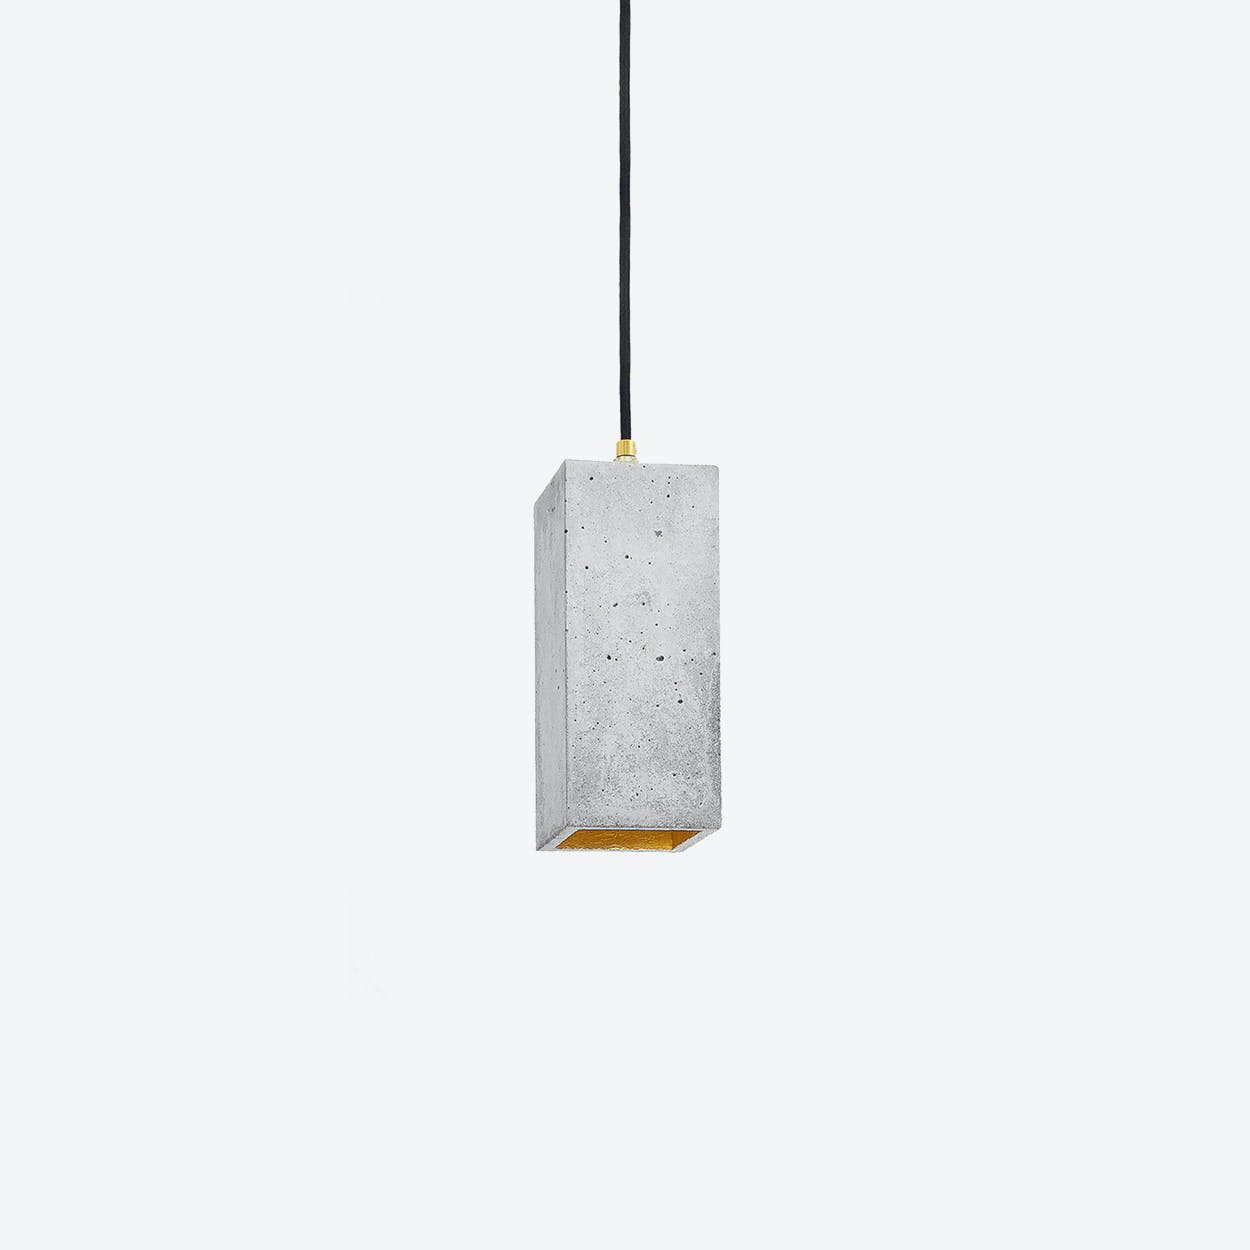 Concrete Pendant Light Retangular B2 in Light Grey and Gold